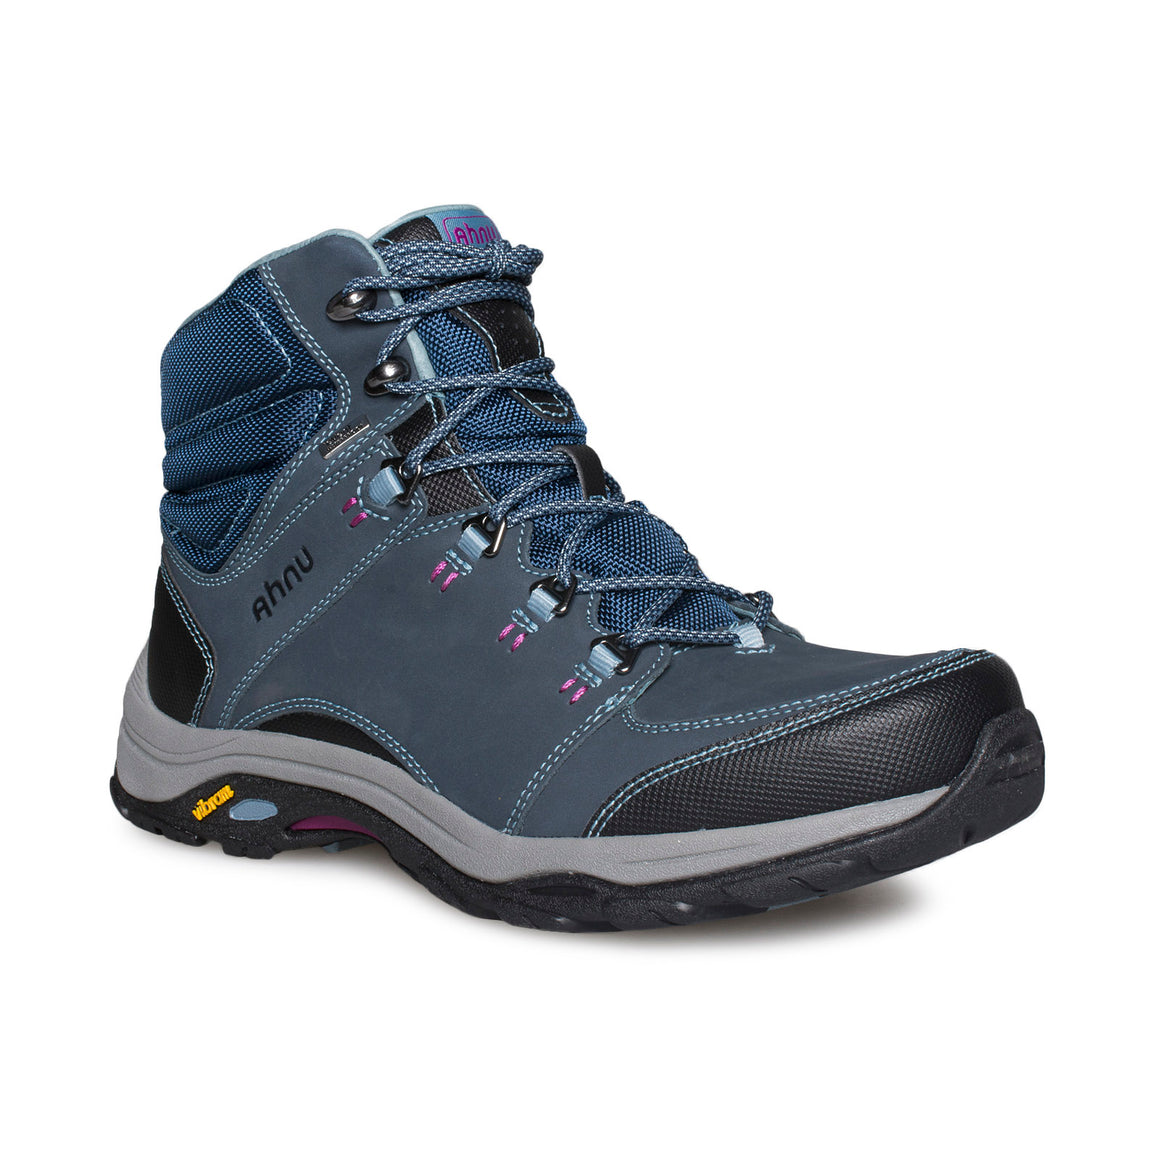 Ahnu Montara III Boot Event Blue Spell - Women's